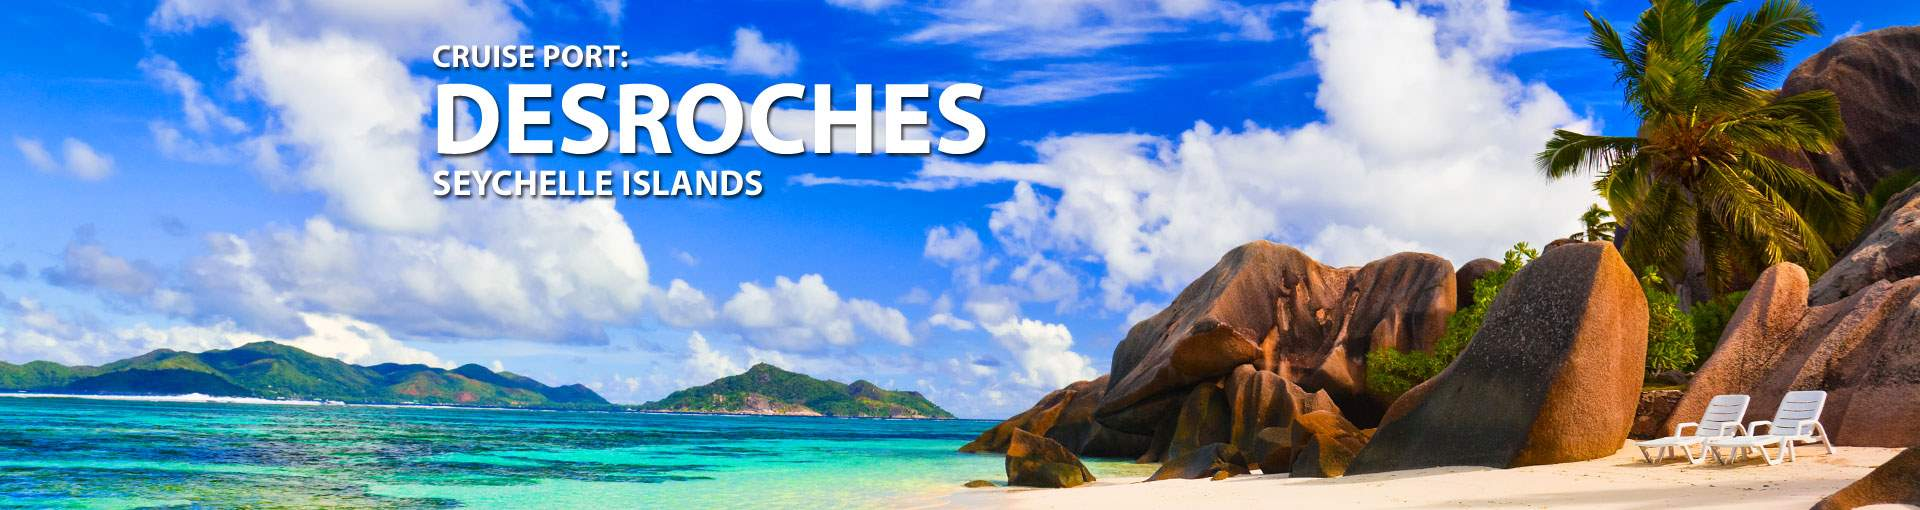 Cruises to Desroches, Seychelle Islands